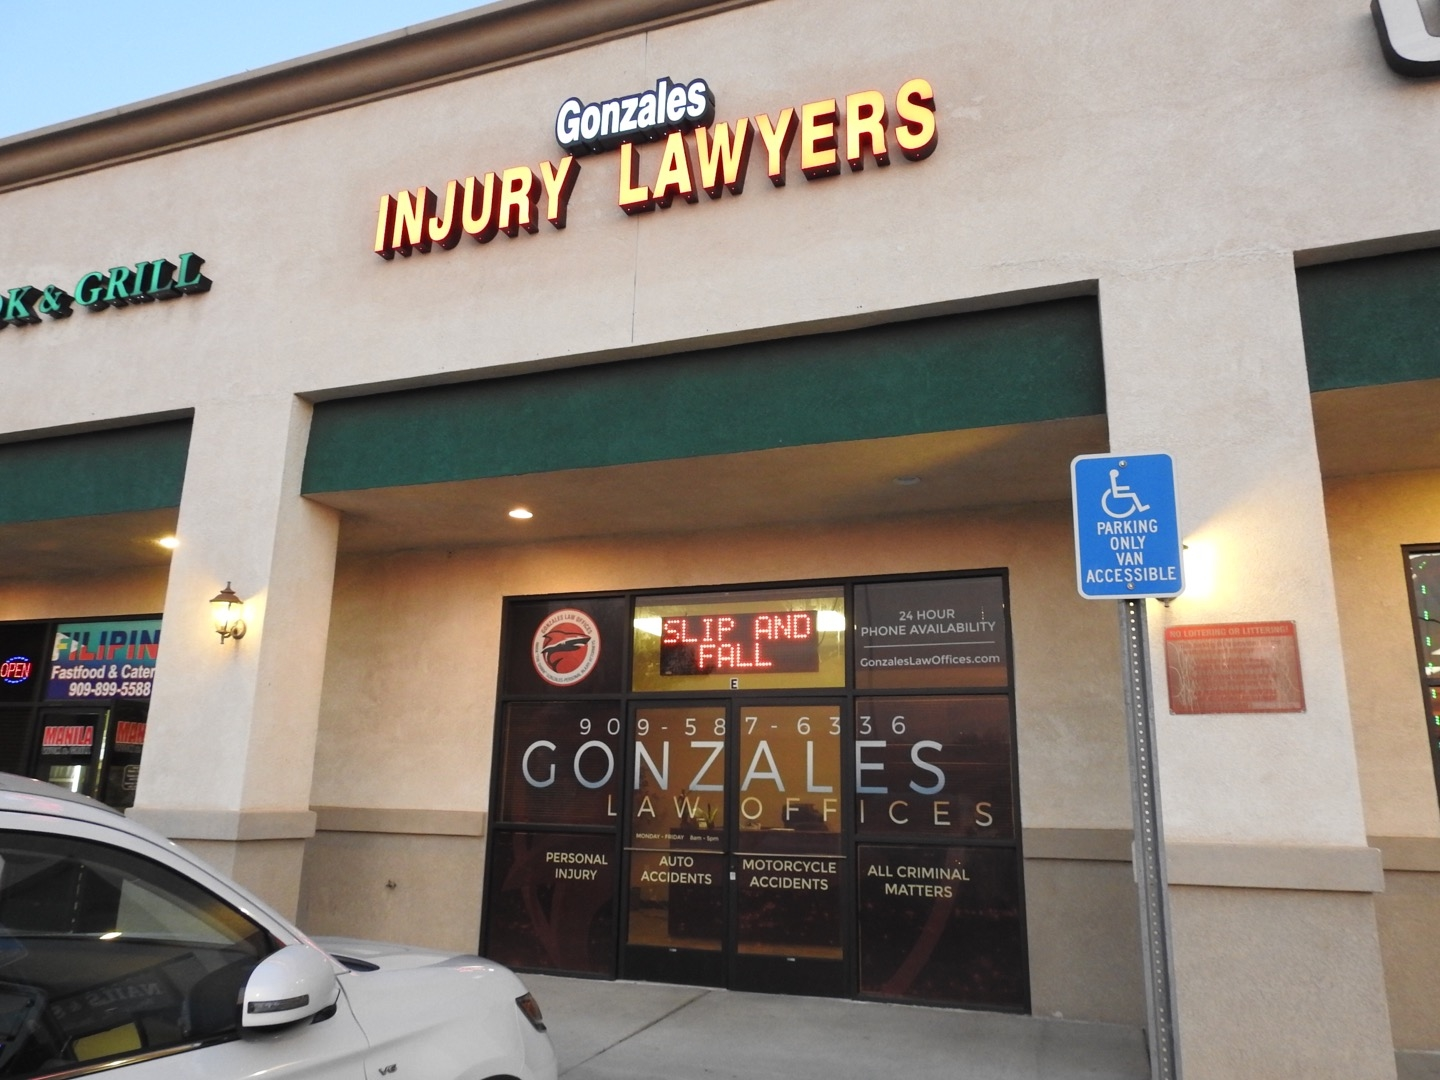 Gonzales law offices image 5